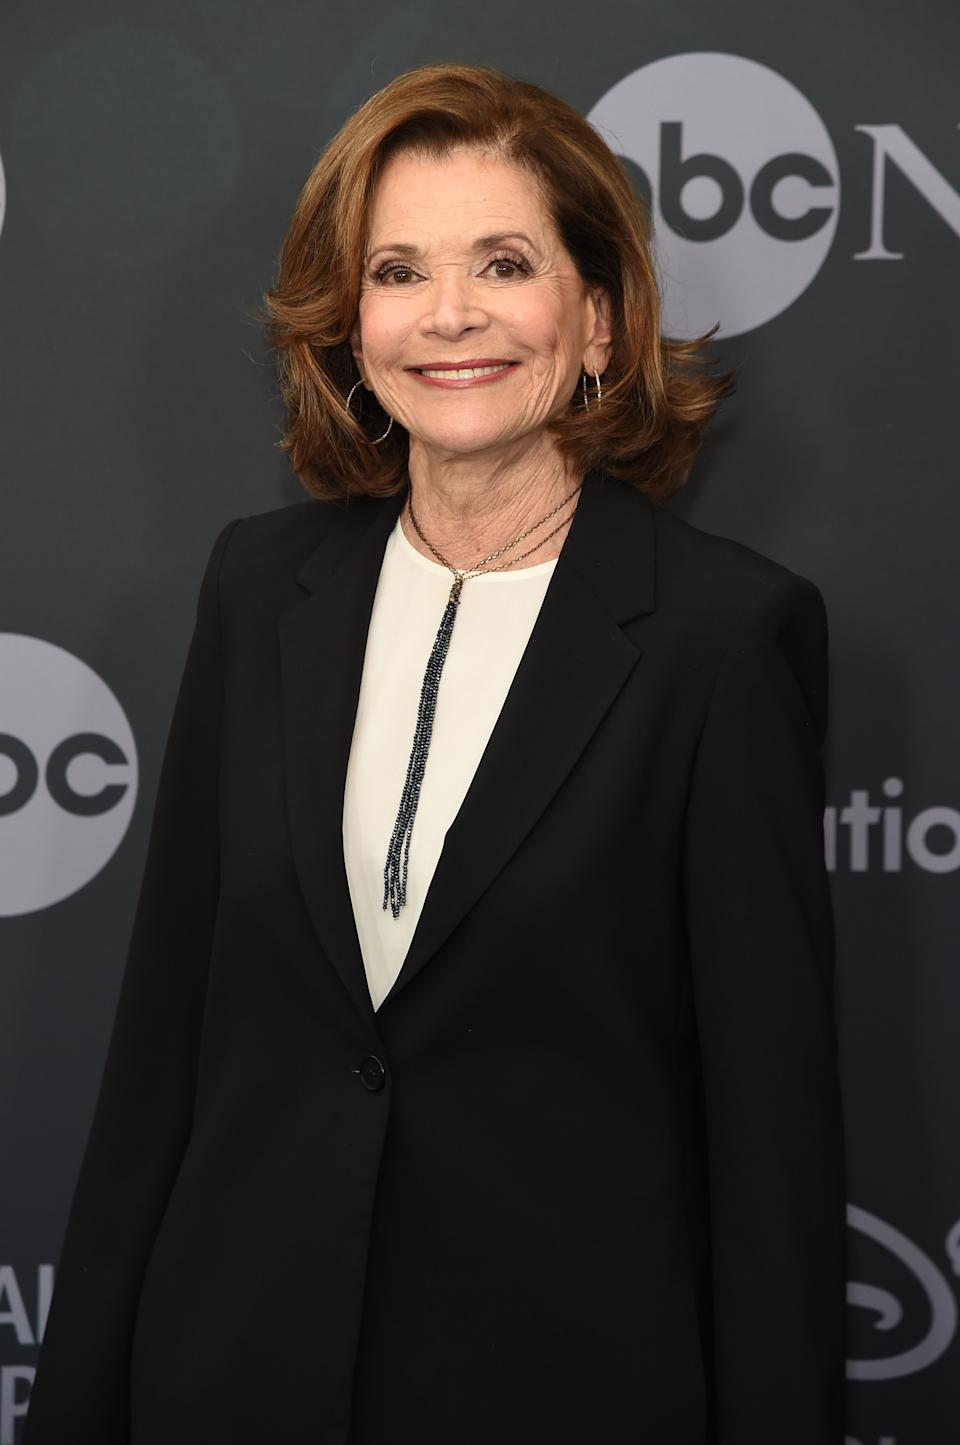 Jessica Walter attends the ABC Walt Disney Television Upfront on May 14, 2019 in New York City.